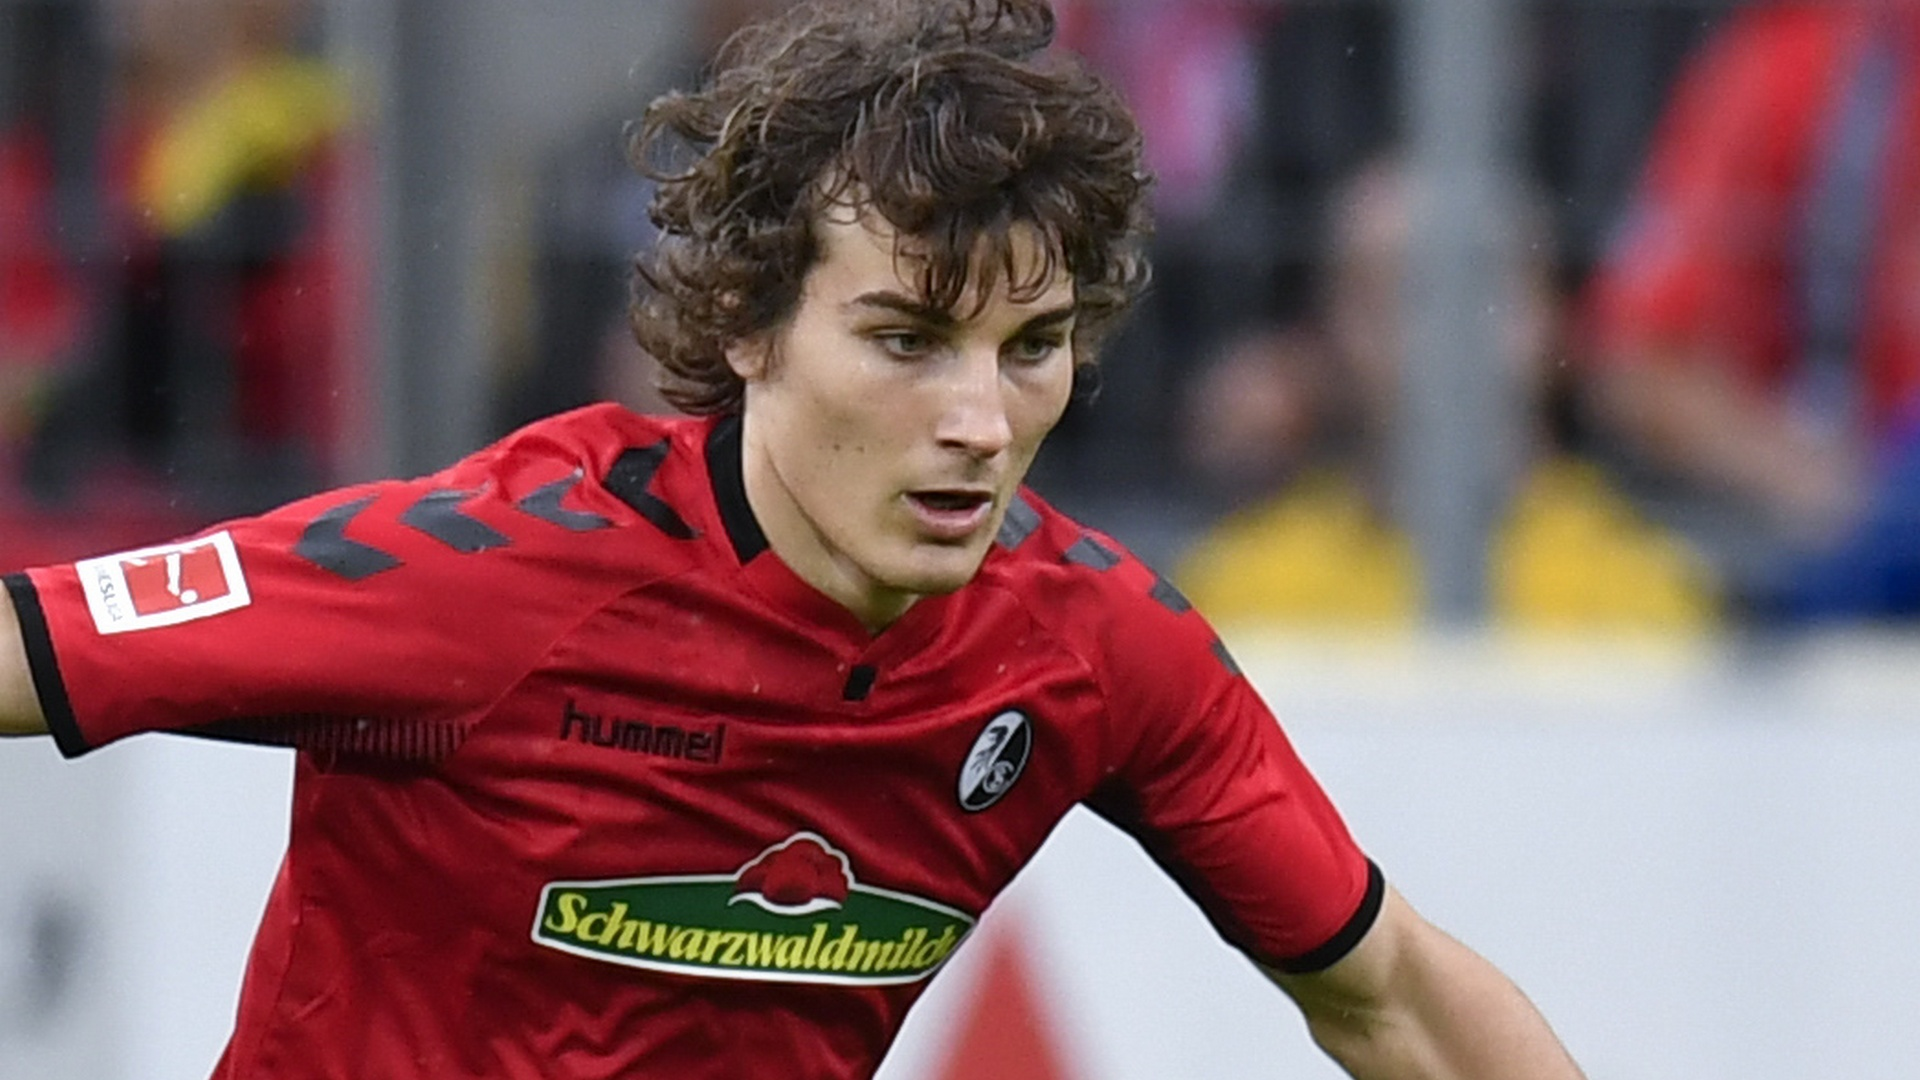 Arsenal set to sign Turkey defender Caglar Soyuncu from Freiburg - club chief